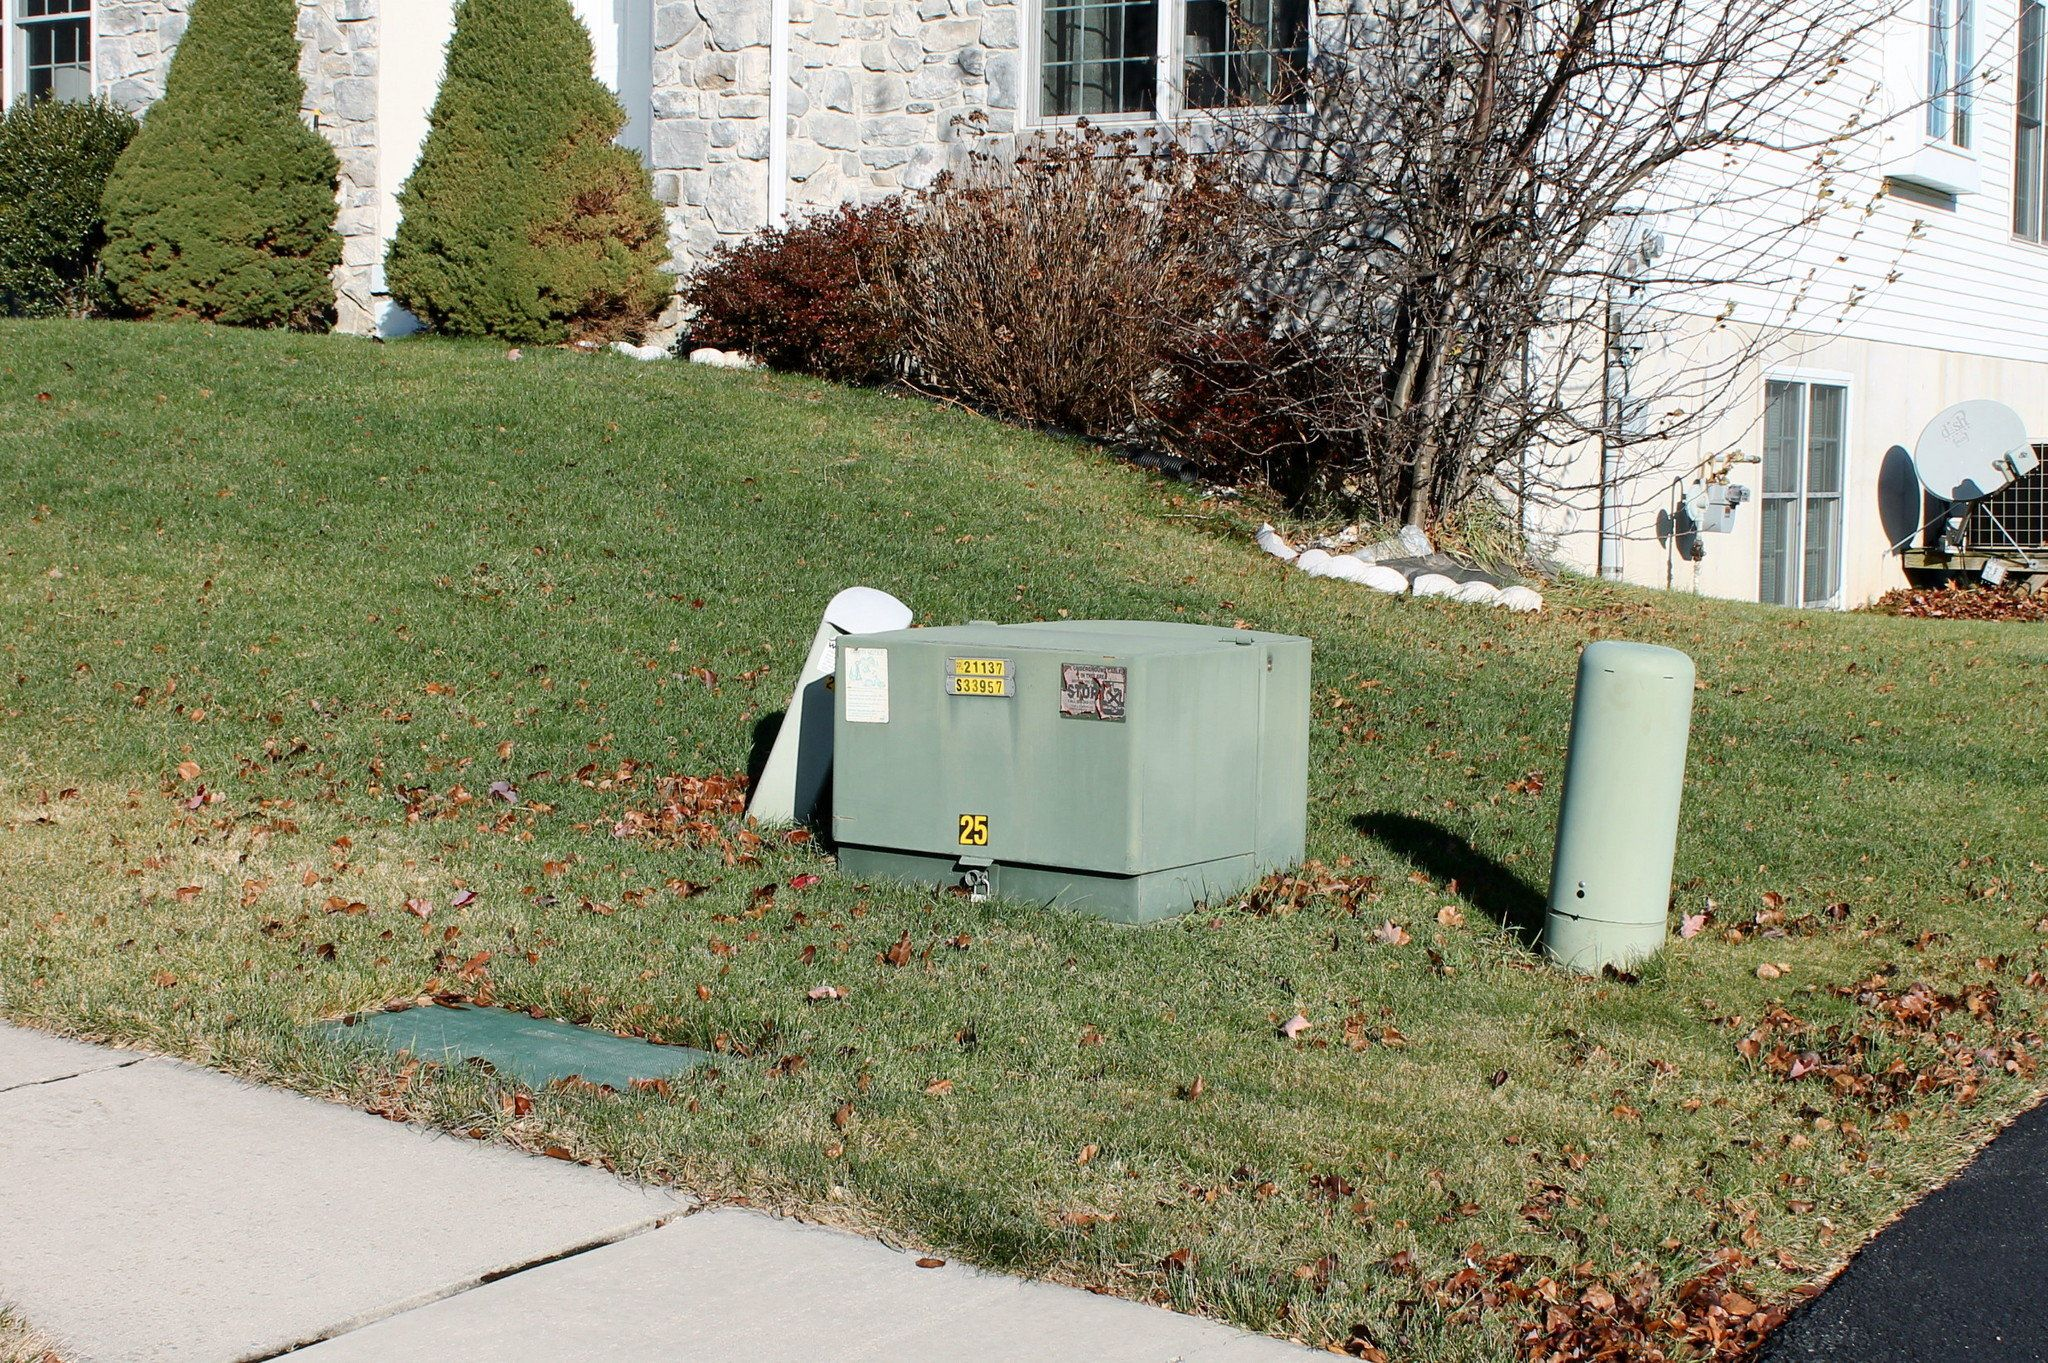 What To Plant In Front Of A Utility Box Gardening Q A With George Weigel Electric Box Utility Box Electrical Box Cover